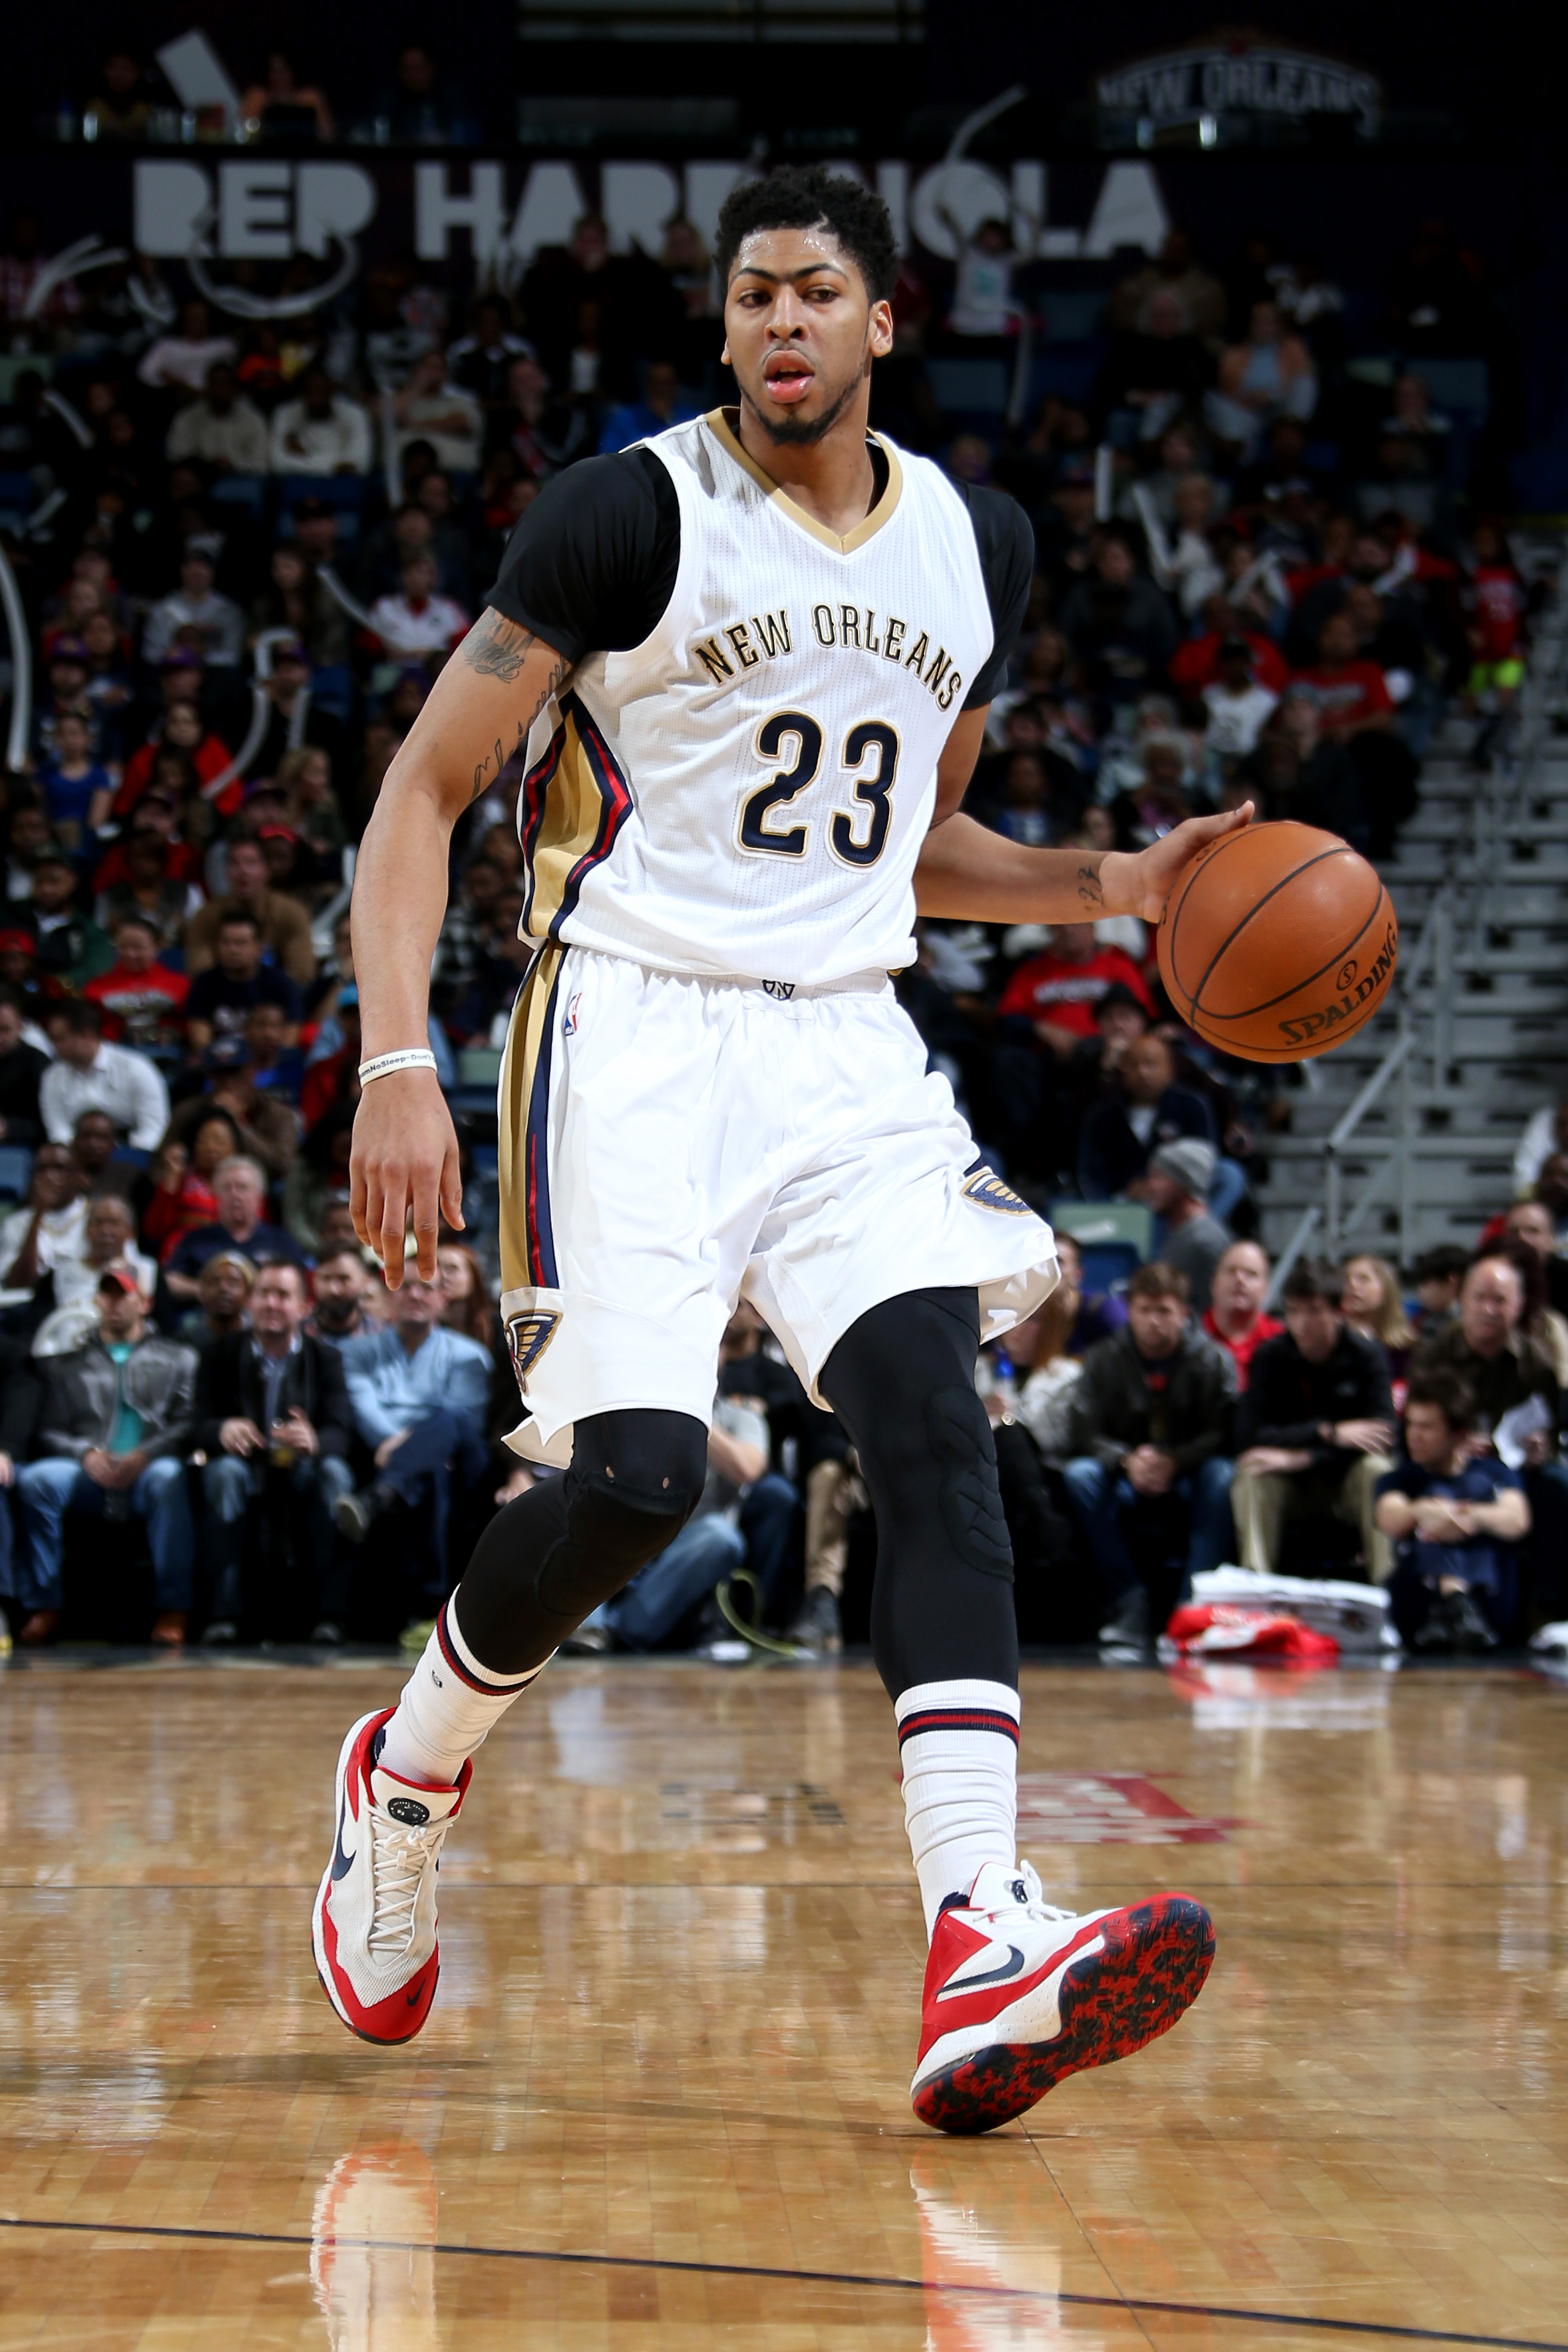 NEW ORLEANS, LA - JANUARY 23:  Anthony Davis #23 of the New Orleans Pelicans dribbles against the Milwaukee Bucks on January 23, 2016 at the Smoothie King Center in New Orleans, Louisiana. (Photo by Layne Murdoch Jr./NBAE via Getty Images)